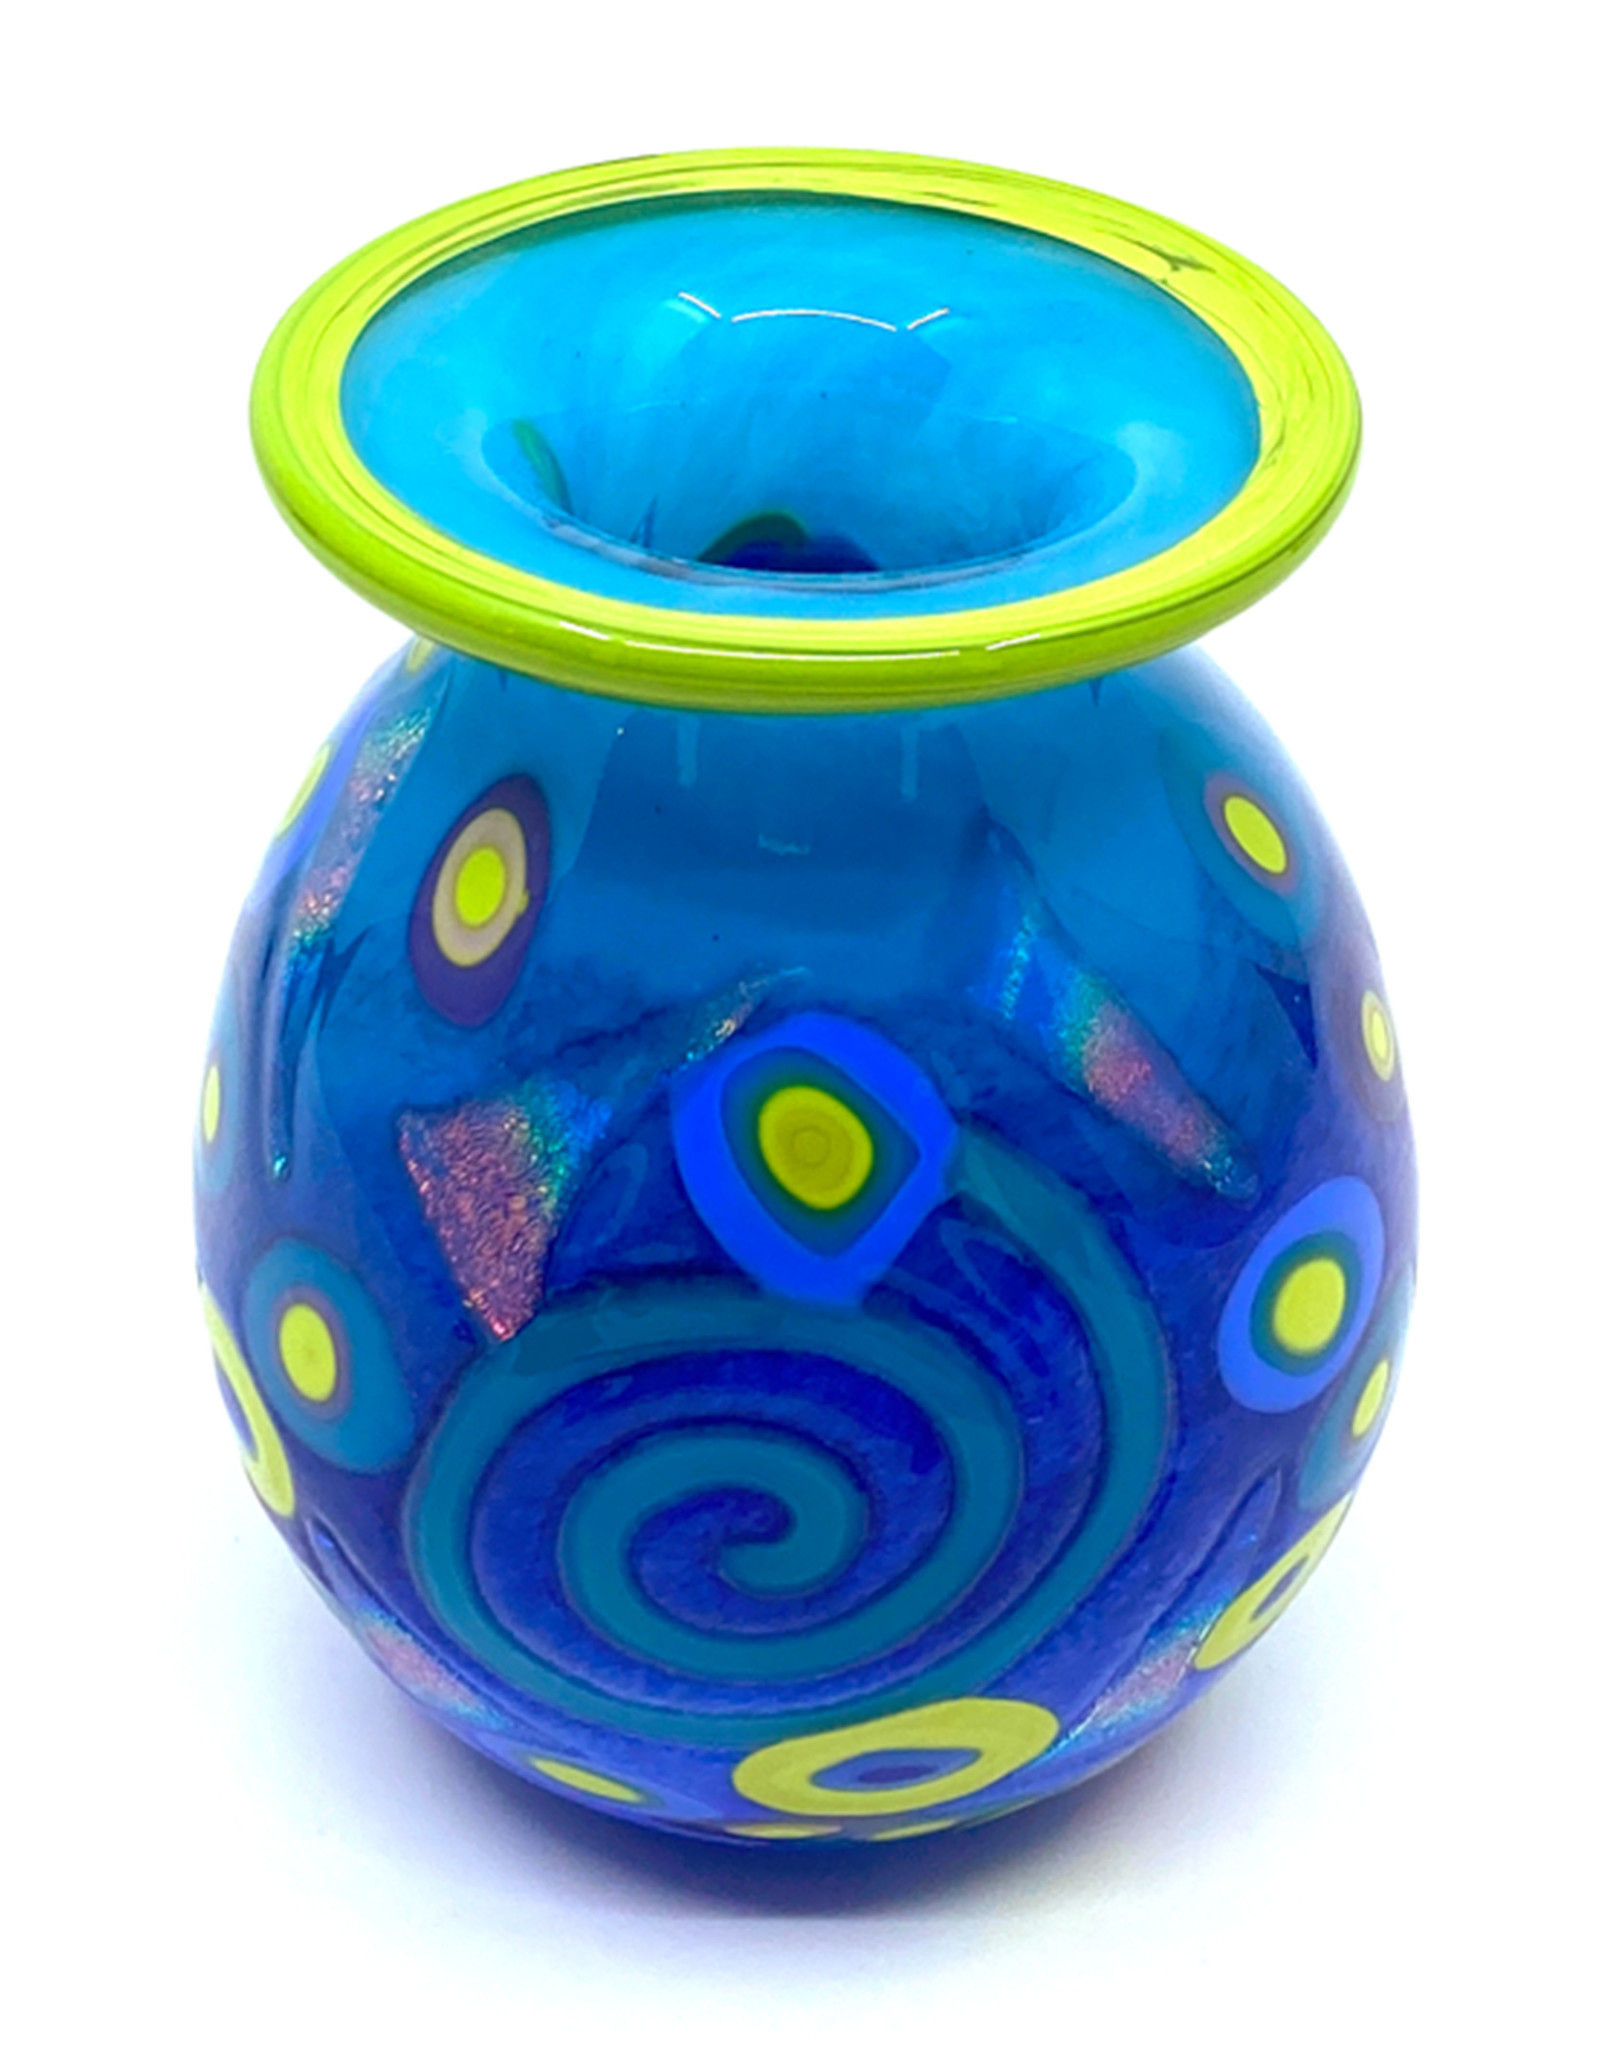 MAD ART PERIWINKLE MINI VASE